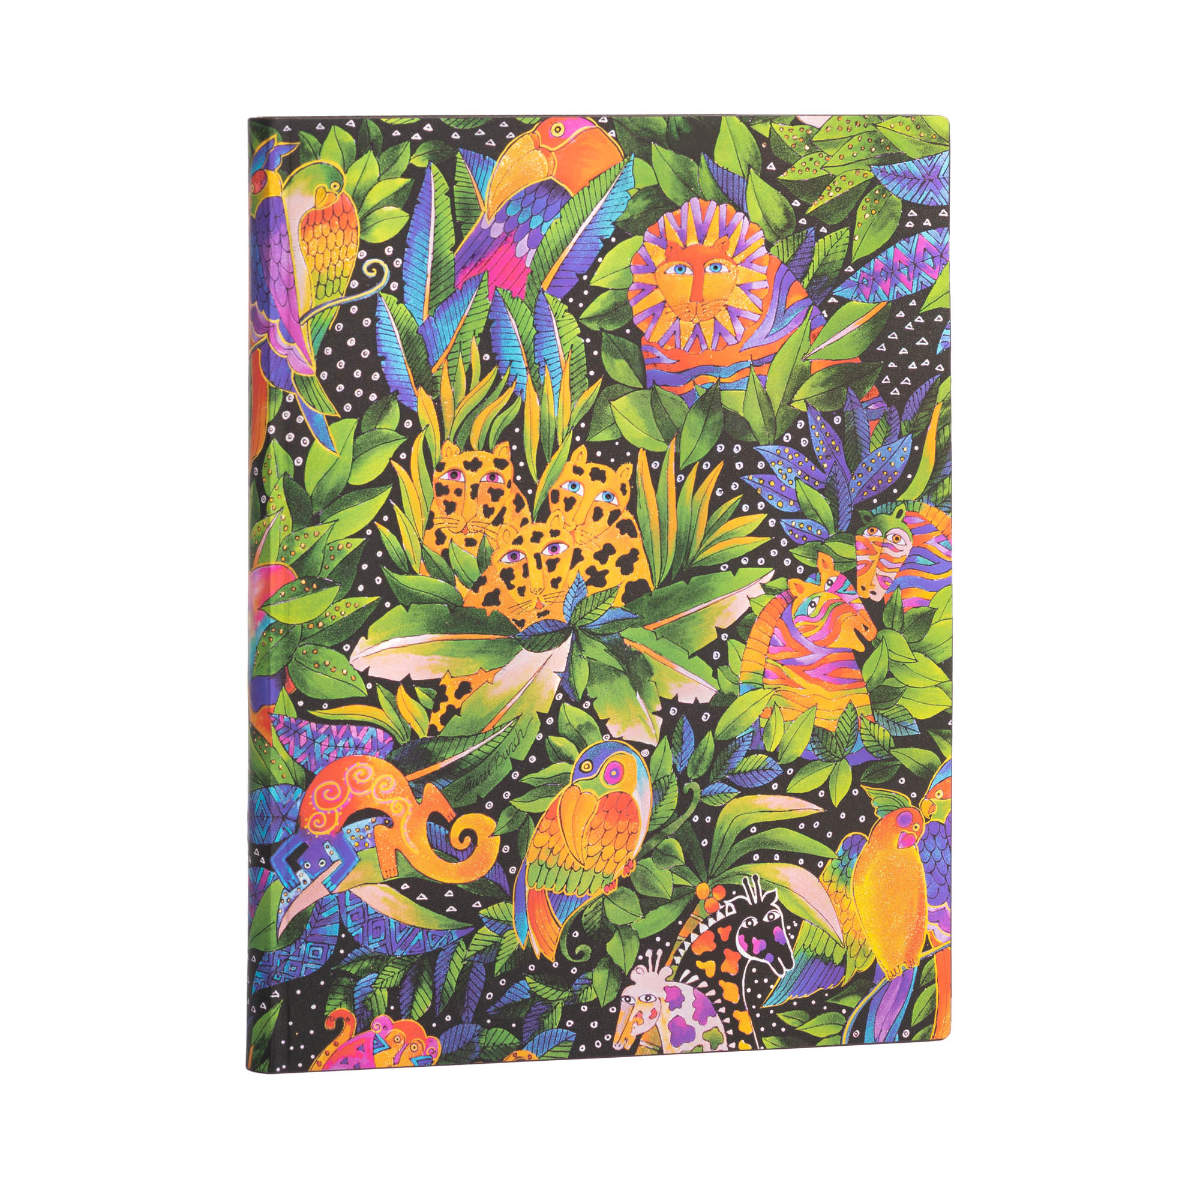 Paperblanks Flexis Laurel Burch Jungle Song 7x9 Ultra Journal